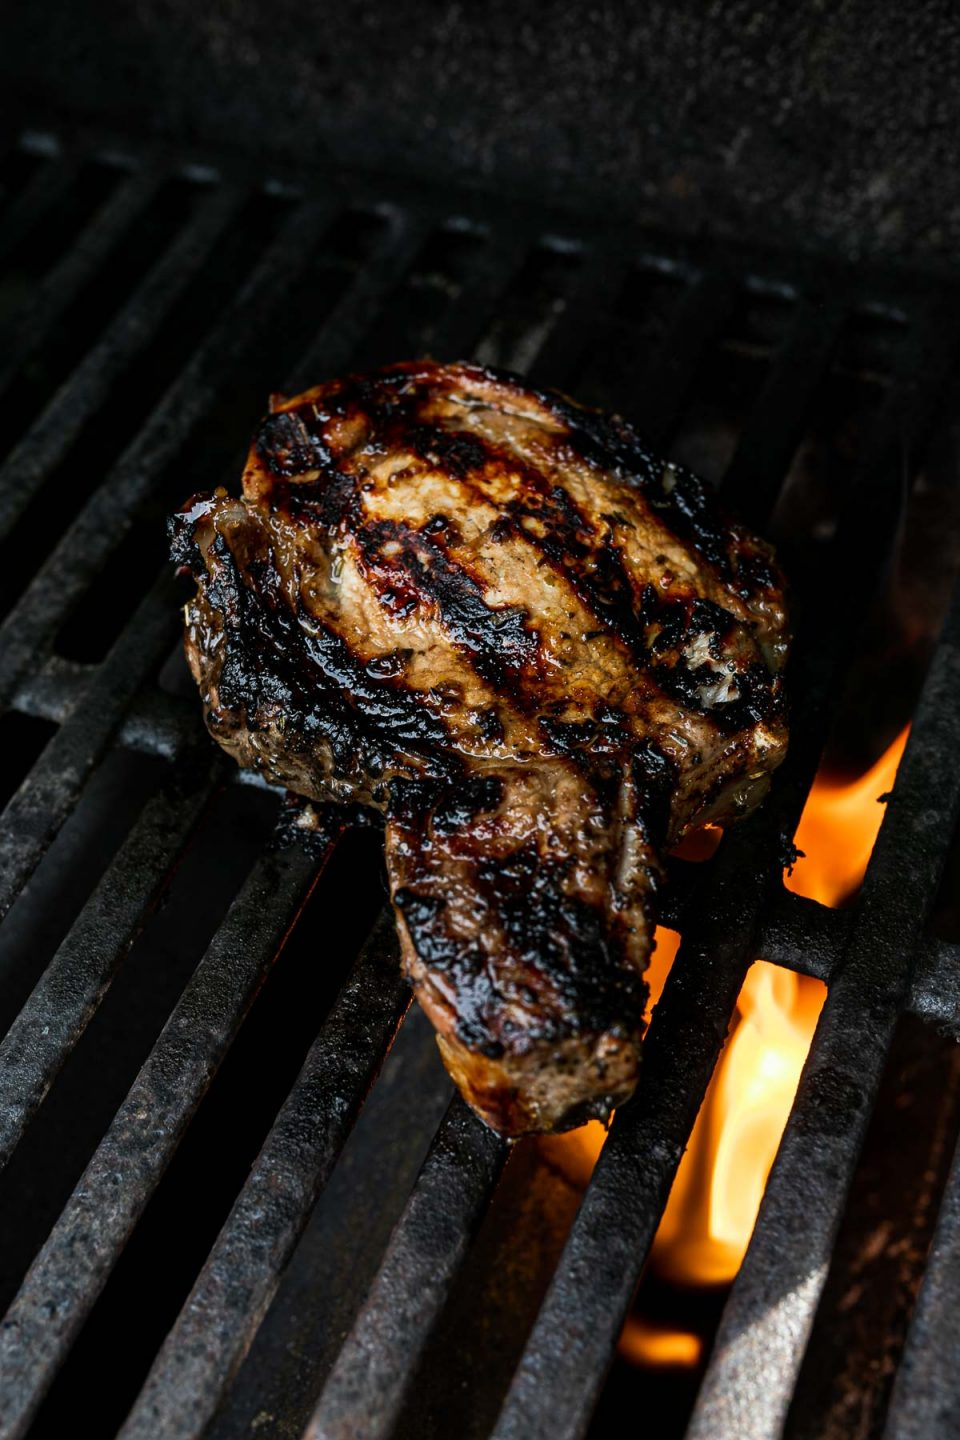 Bone in pork chop atop grilling grates with small flame flaring up through the grates.